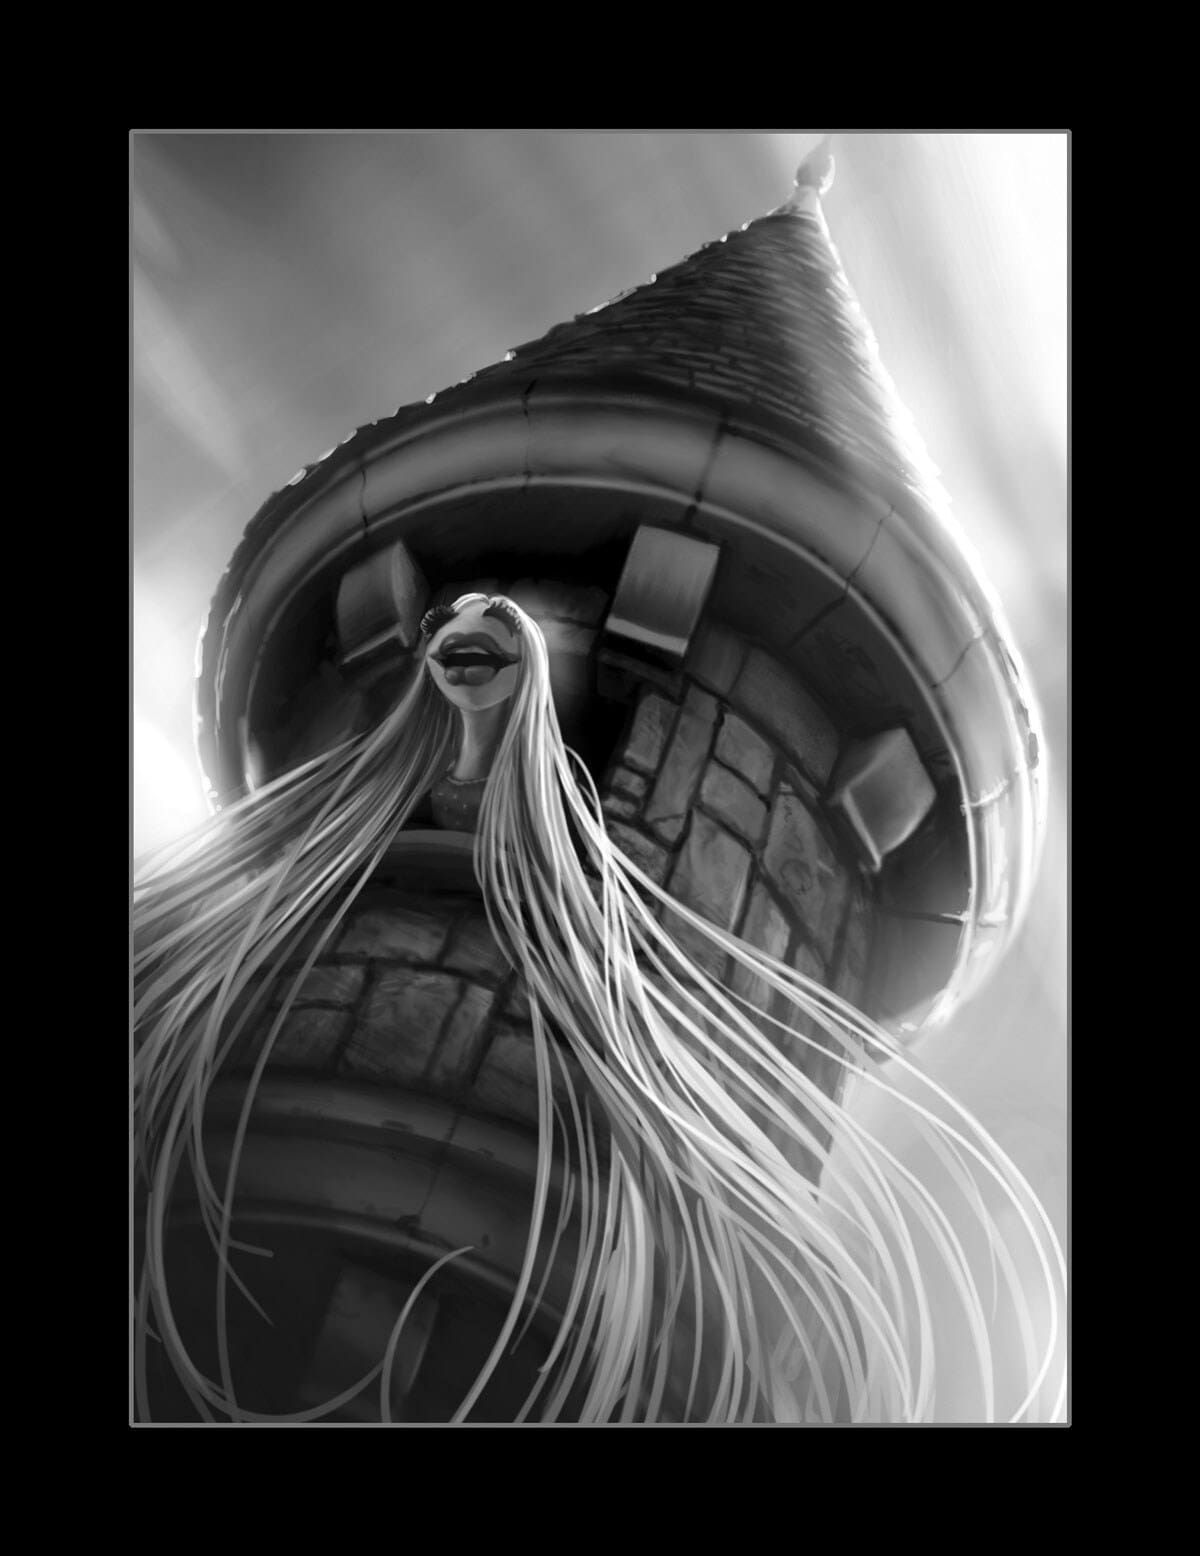 Black and White illustration of Janice as Rapunzel